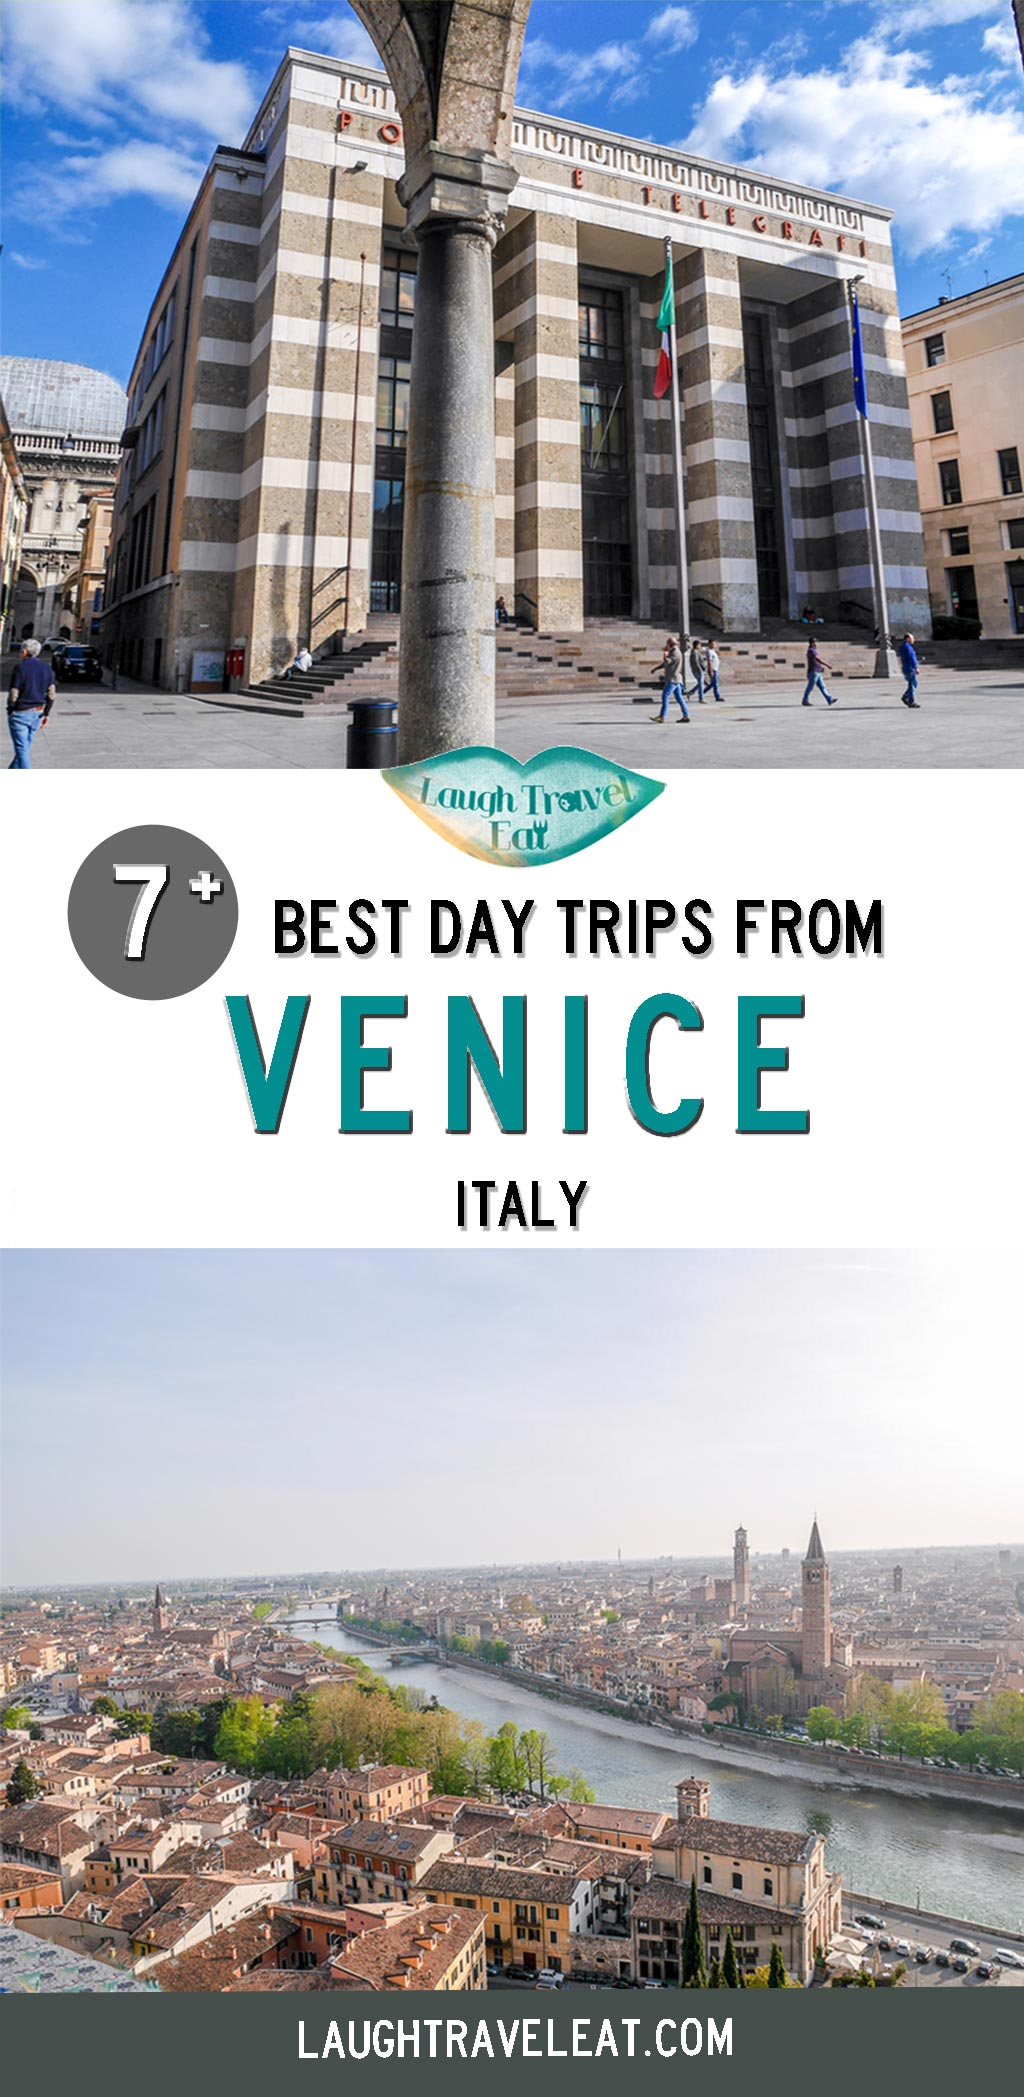 Venice is a beautiful city, no doubt. But a day trip can take you to some of Italy's best gems! Italy has an extensive train network that can whiz you away in mere minutes to a different city. Whether you have too much time on your hand or look to escape the other tourists in the gorgeous water town, here are some of my best picks under 3 hours away: #Venice #DayTrip #Italy